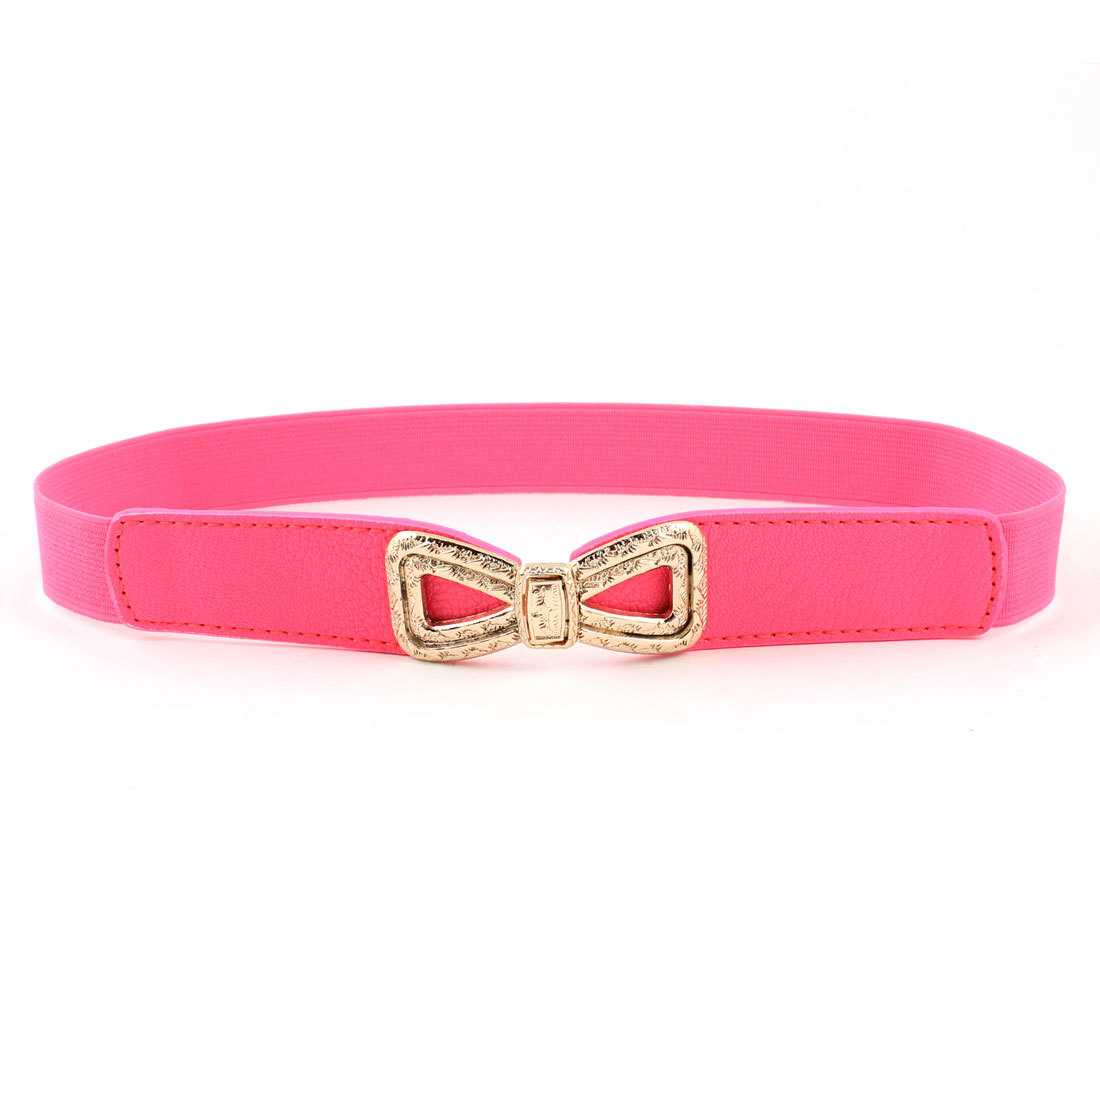 1inches Wide Faux Leather Elastic Band Slim Waist Belt Hot Pink for Women